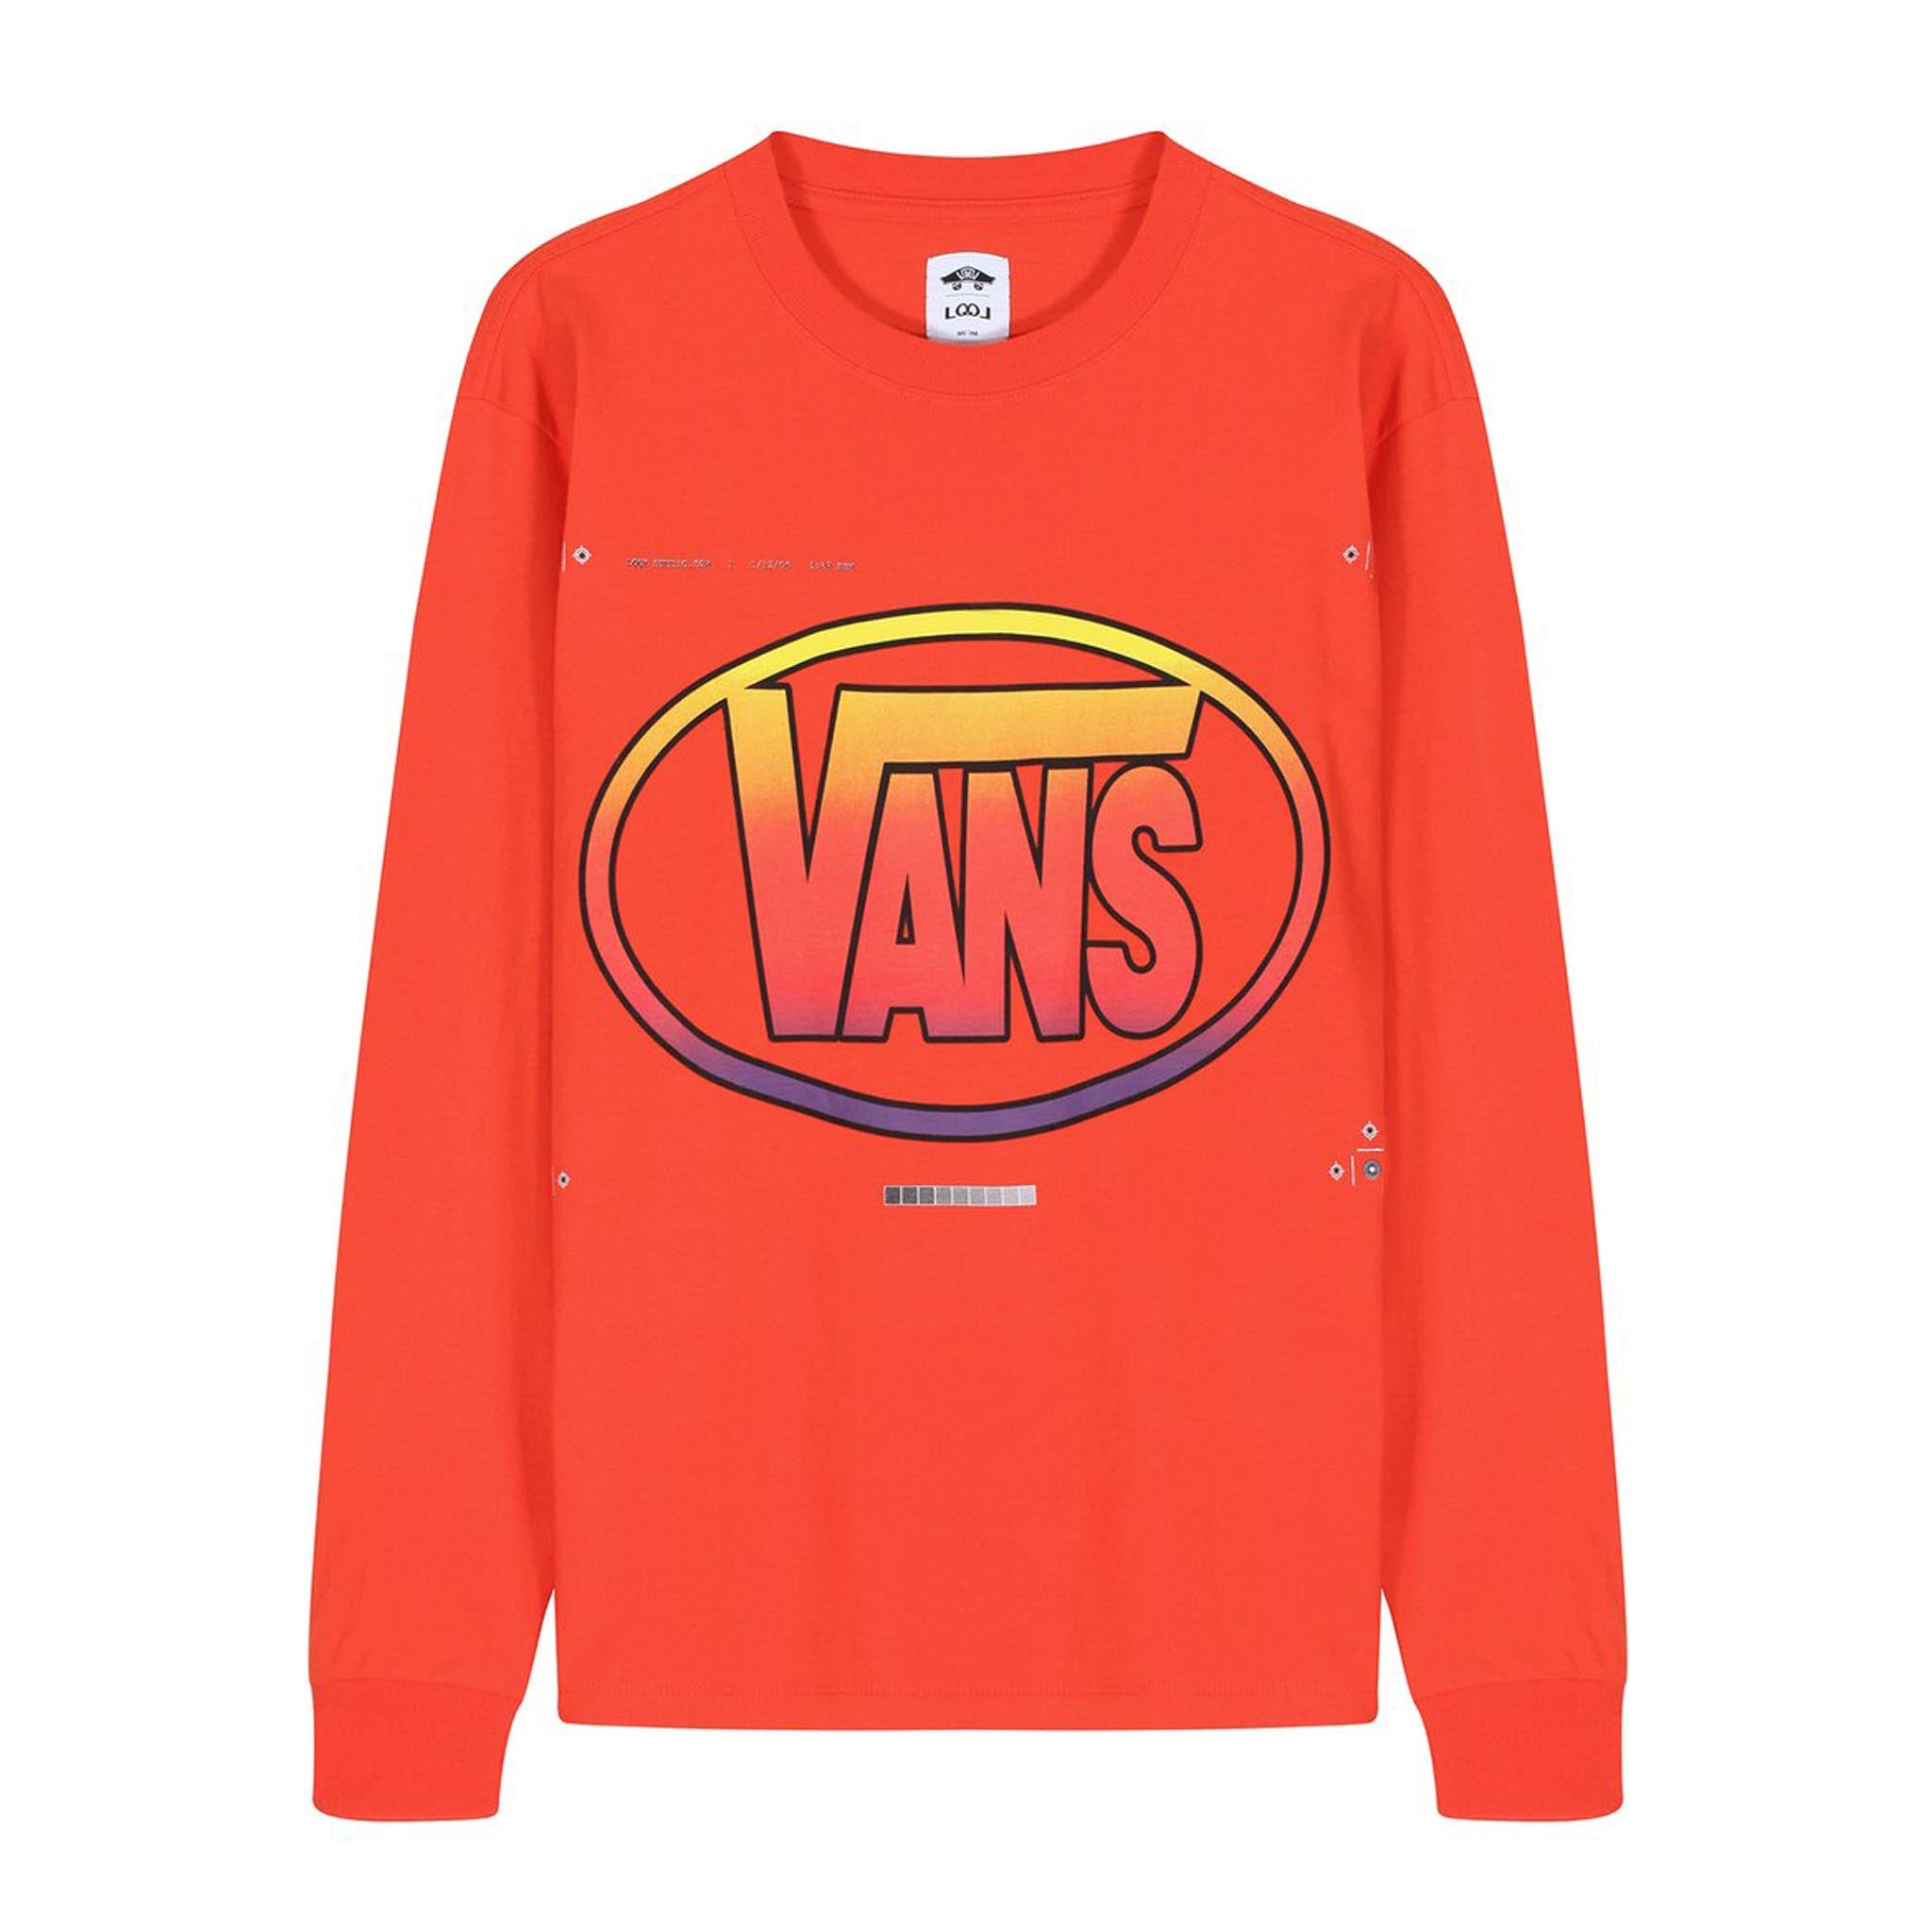 Vans Vault x LQQK Studio Long Sleeve Tee Bright Orange